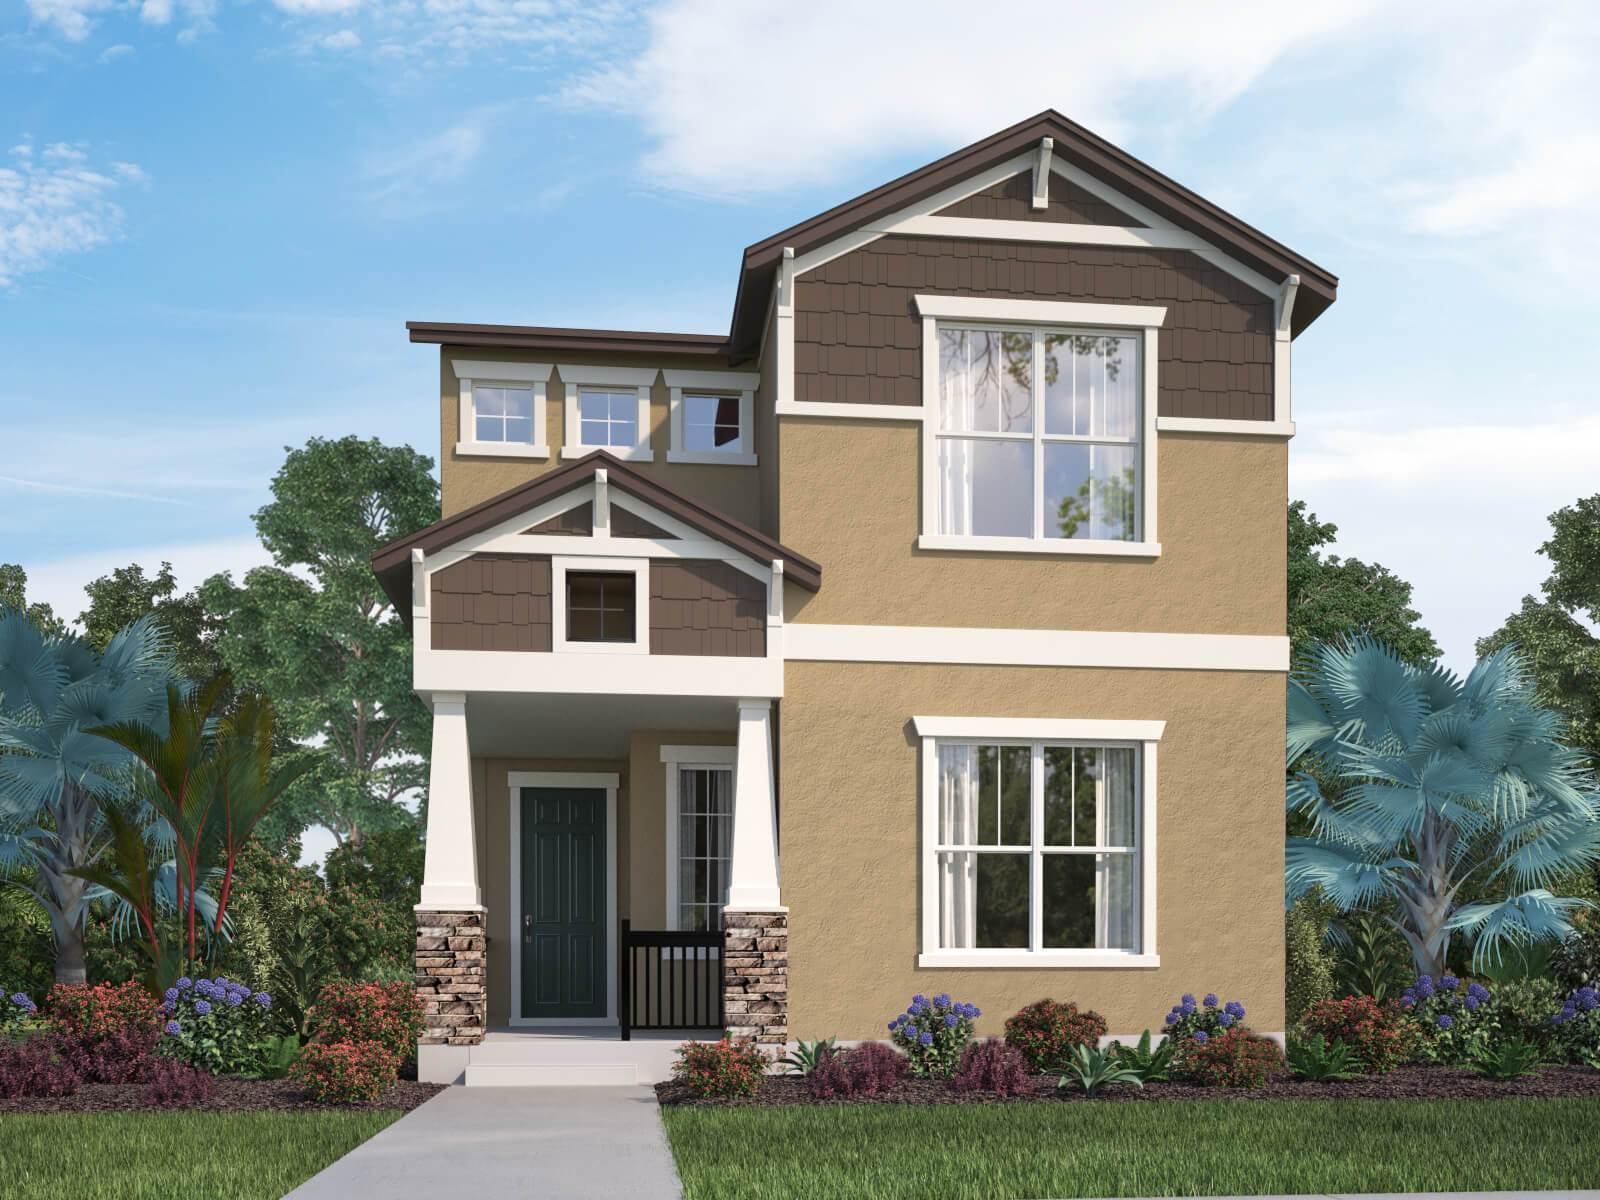 New Homes In Oakland, Fl - 292 Subdivisions - Newhomesource